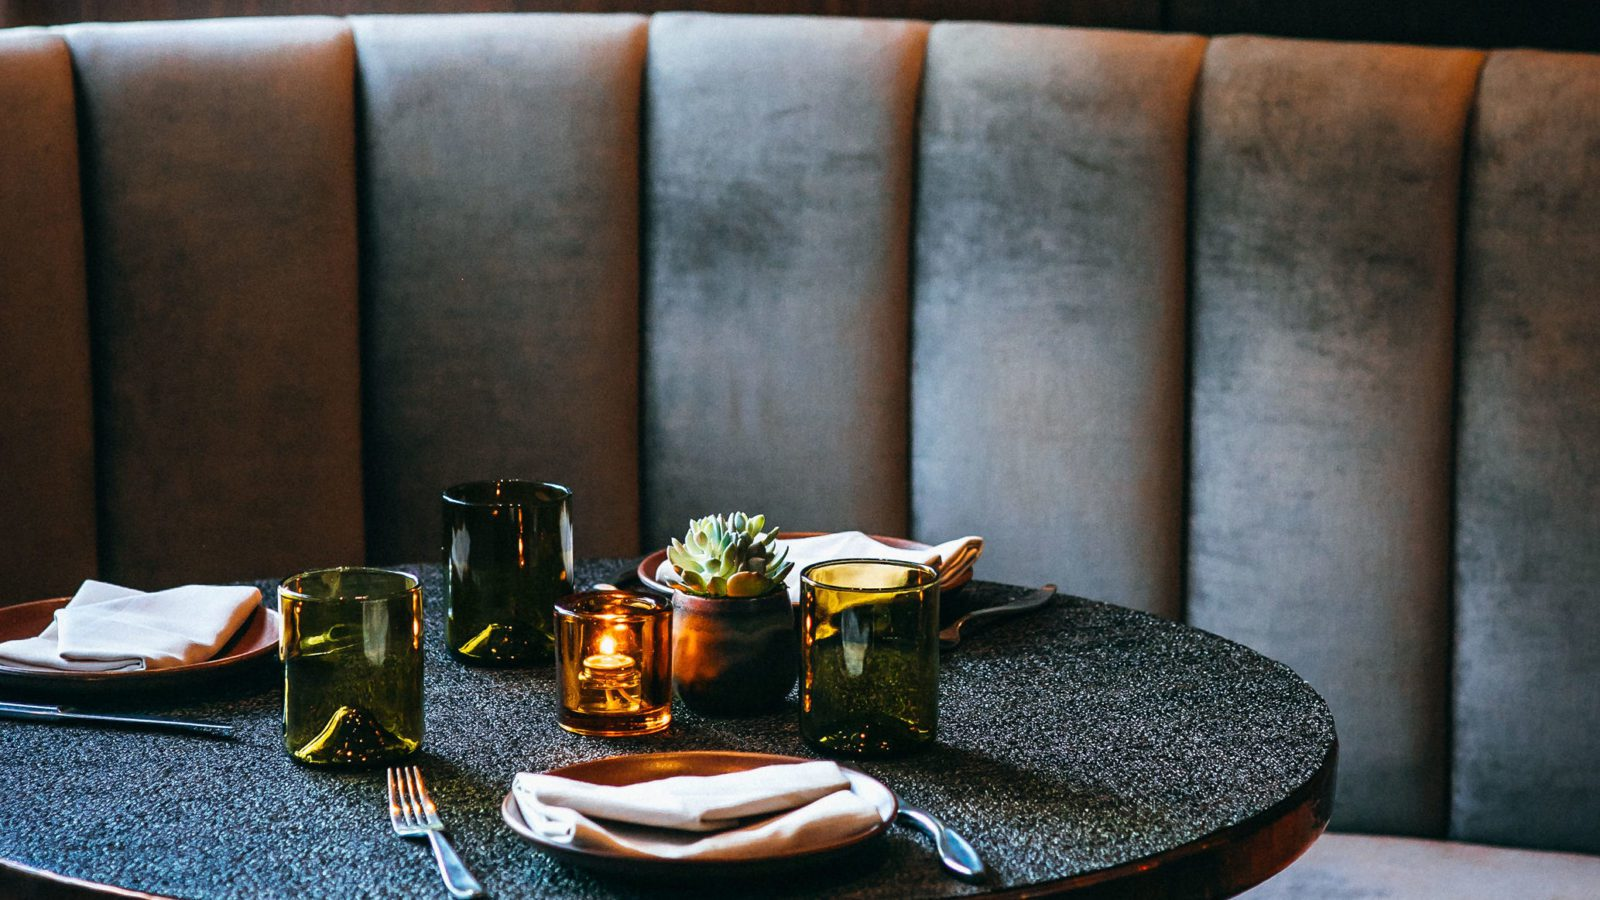 Round banquette with place setting.